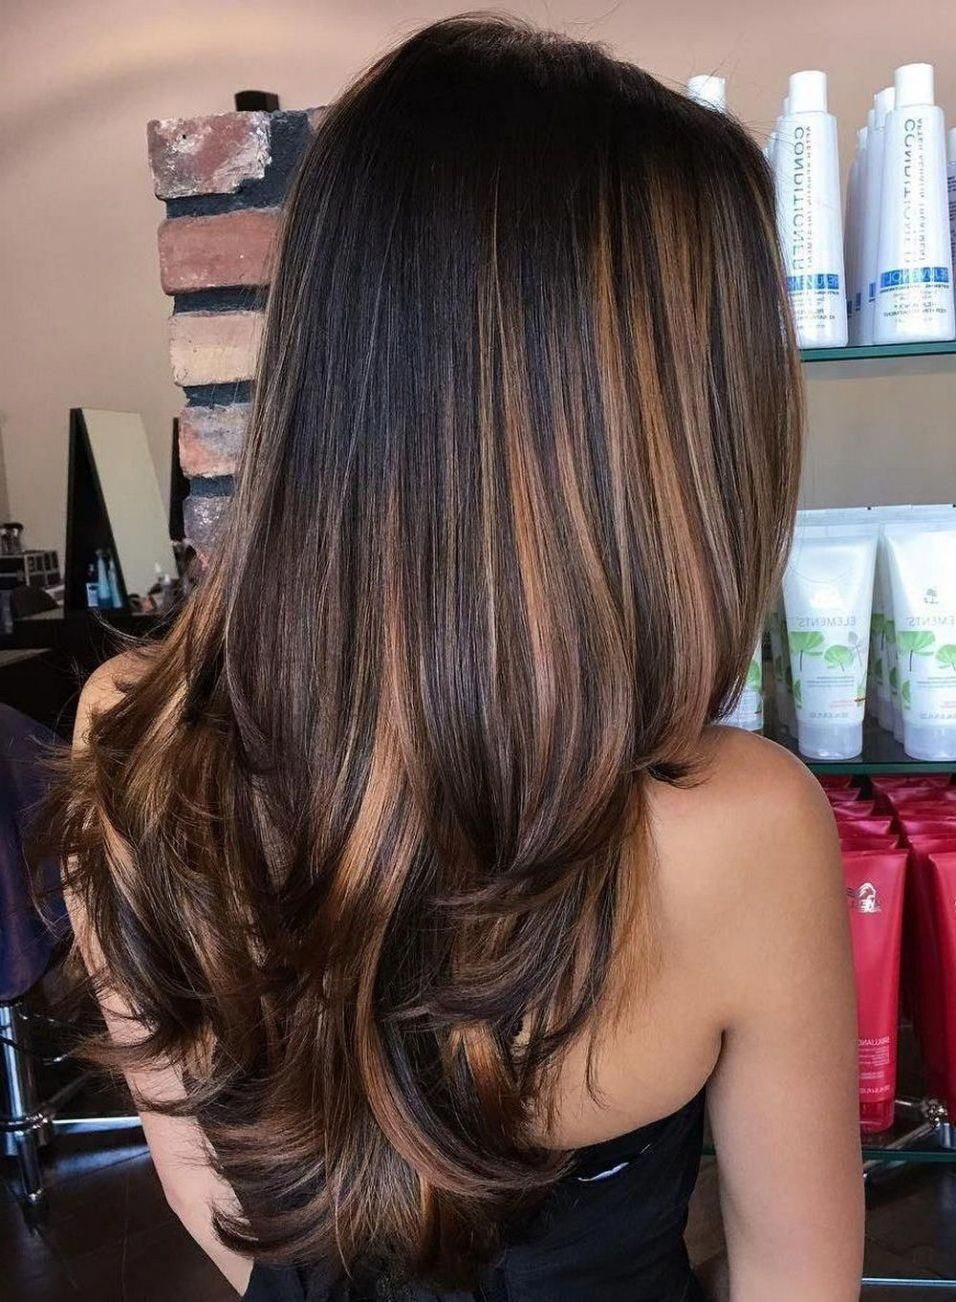 70 Flattering Balayage Hair Color Ideas For 2020 In 2020 Hair Color For Black Hair Dark Hair With Highlights Hair Color Asian